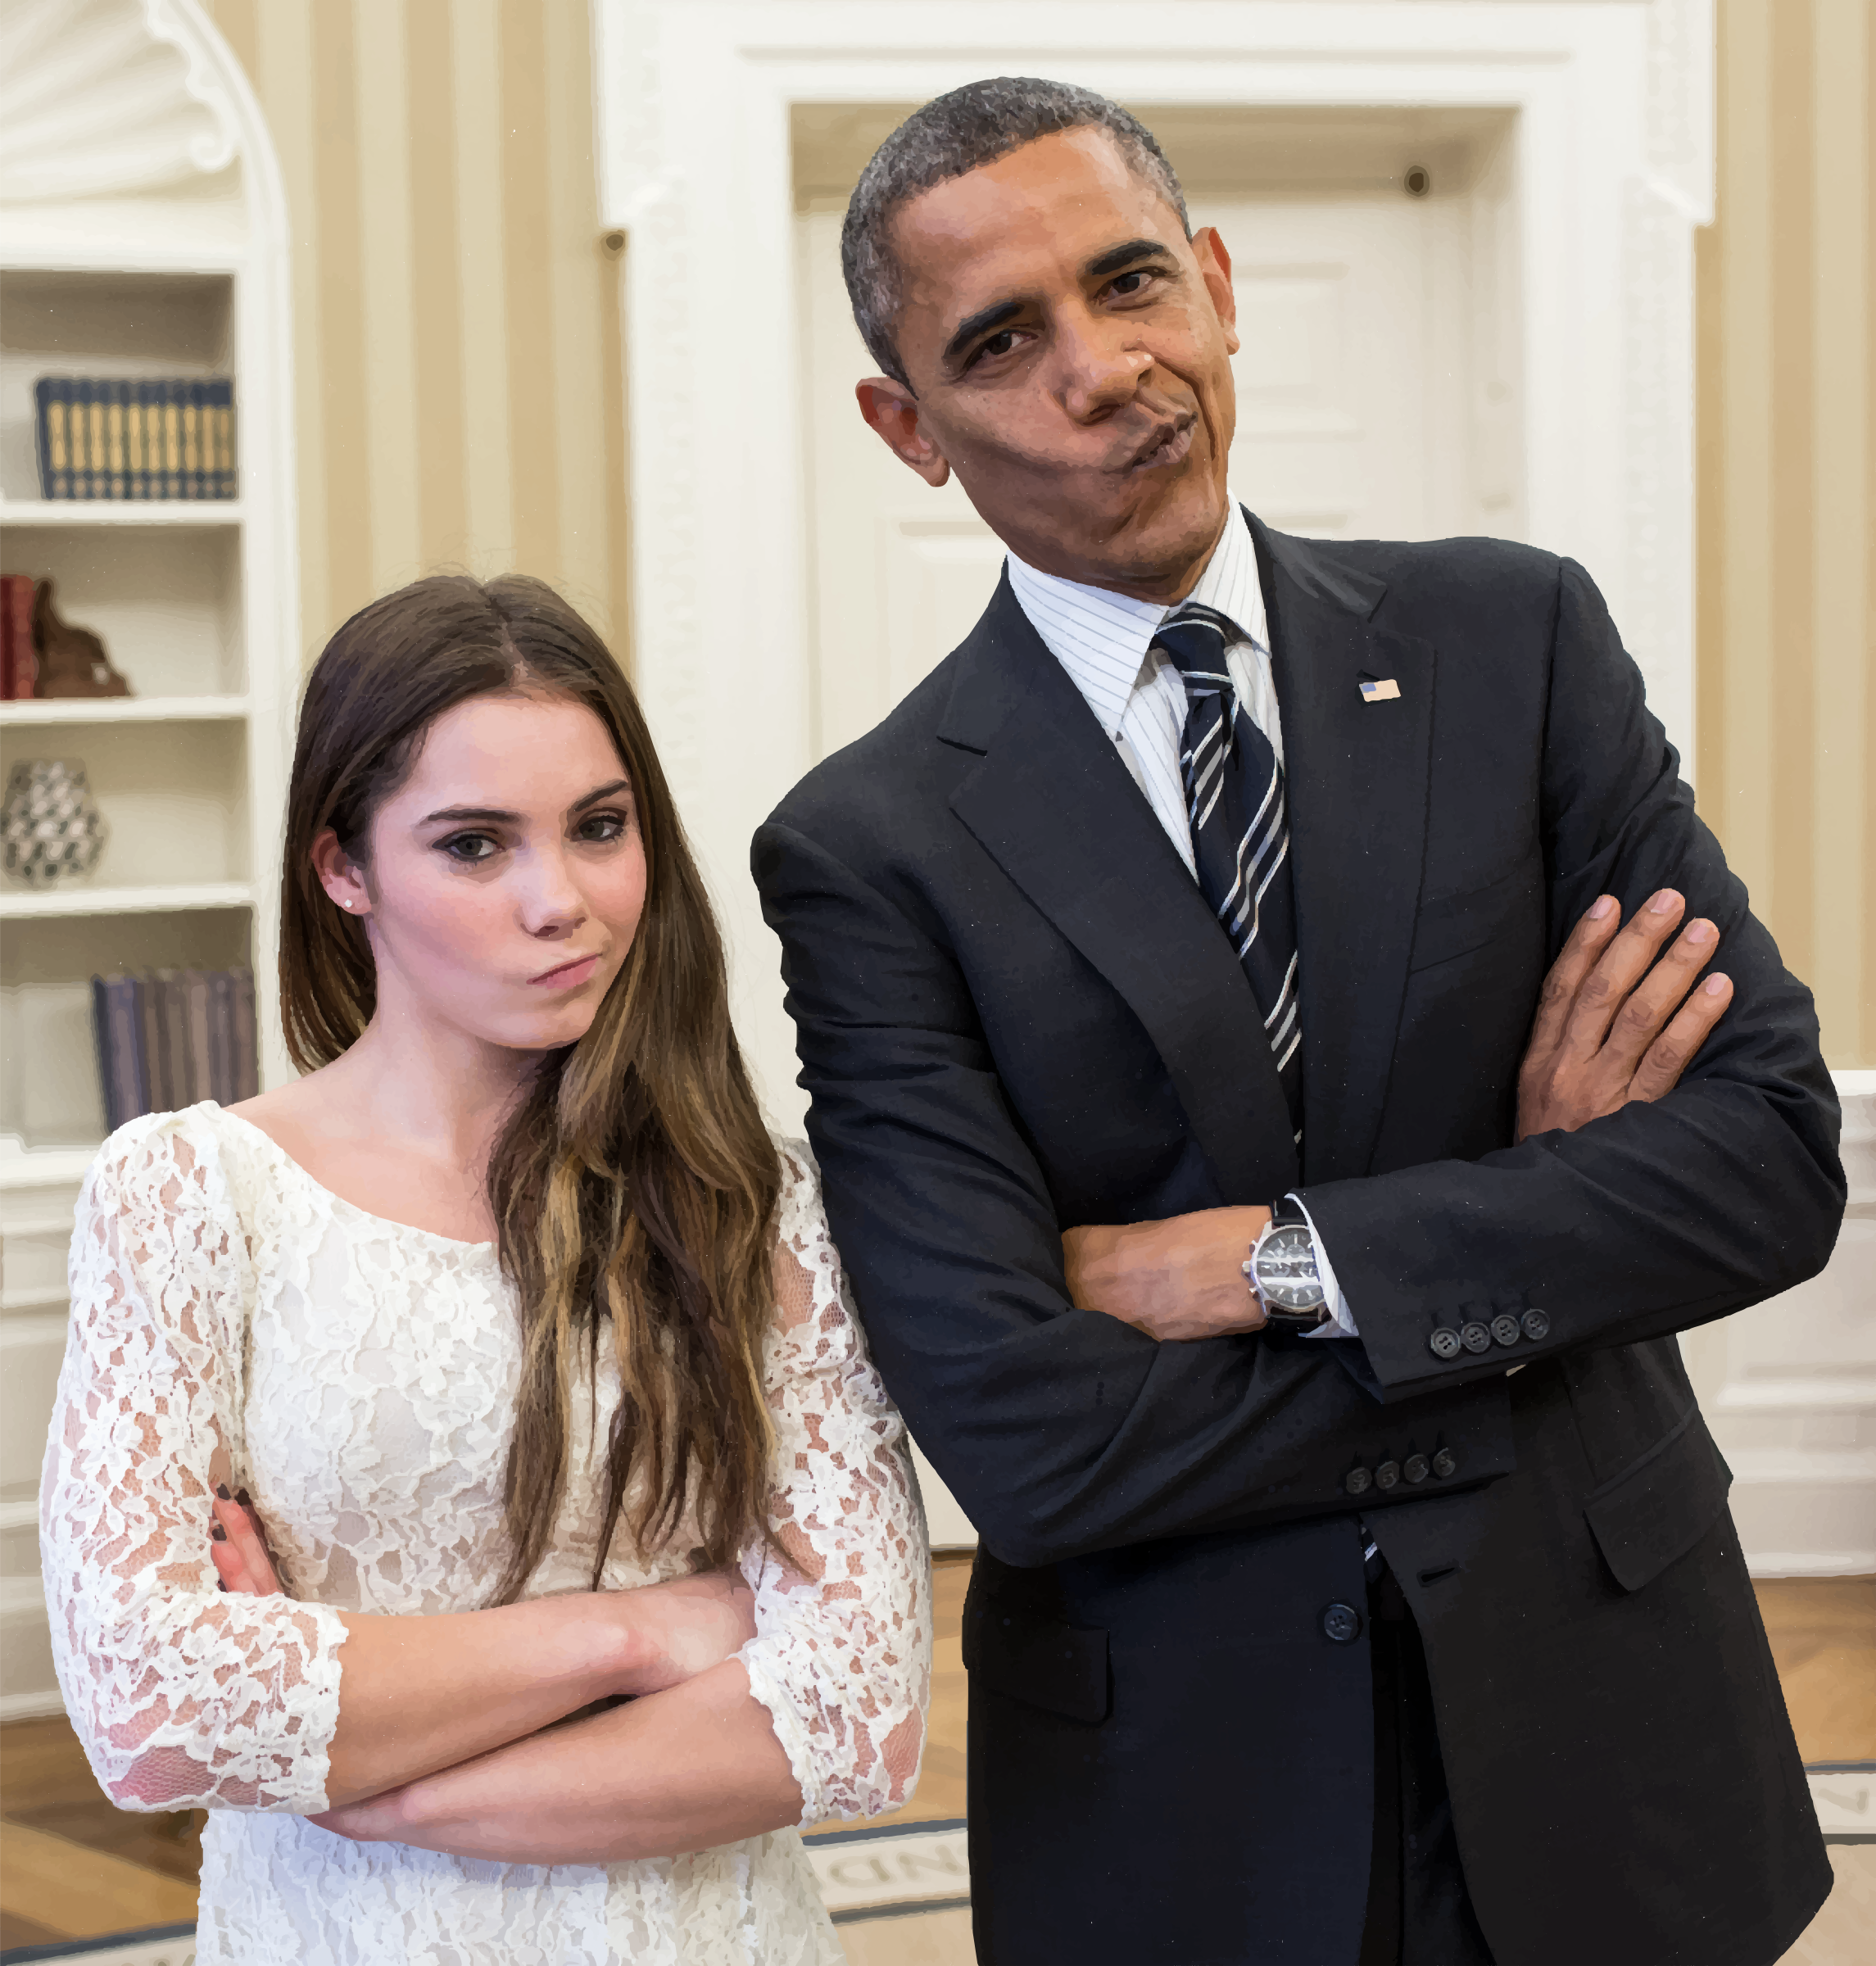 Barack Obama With Artistic Gymnastic McKayla Maroney by GDJ